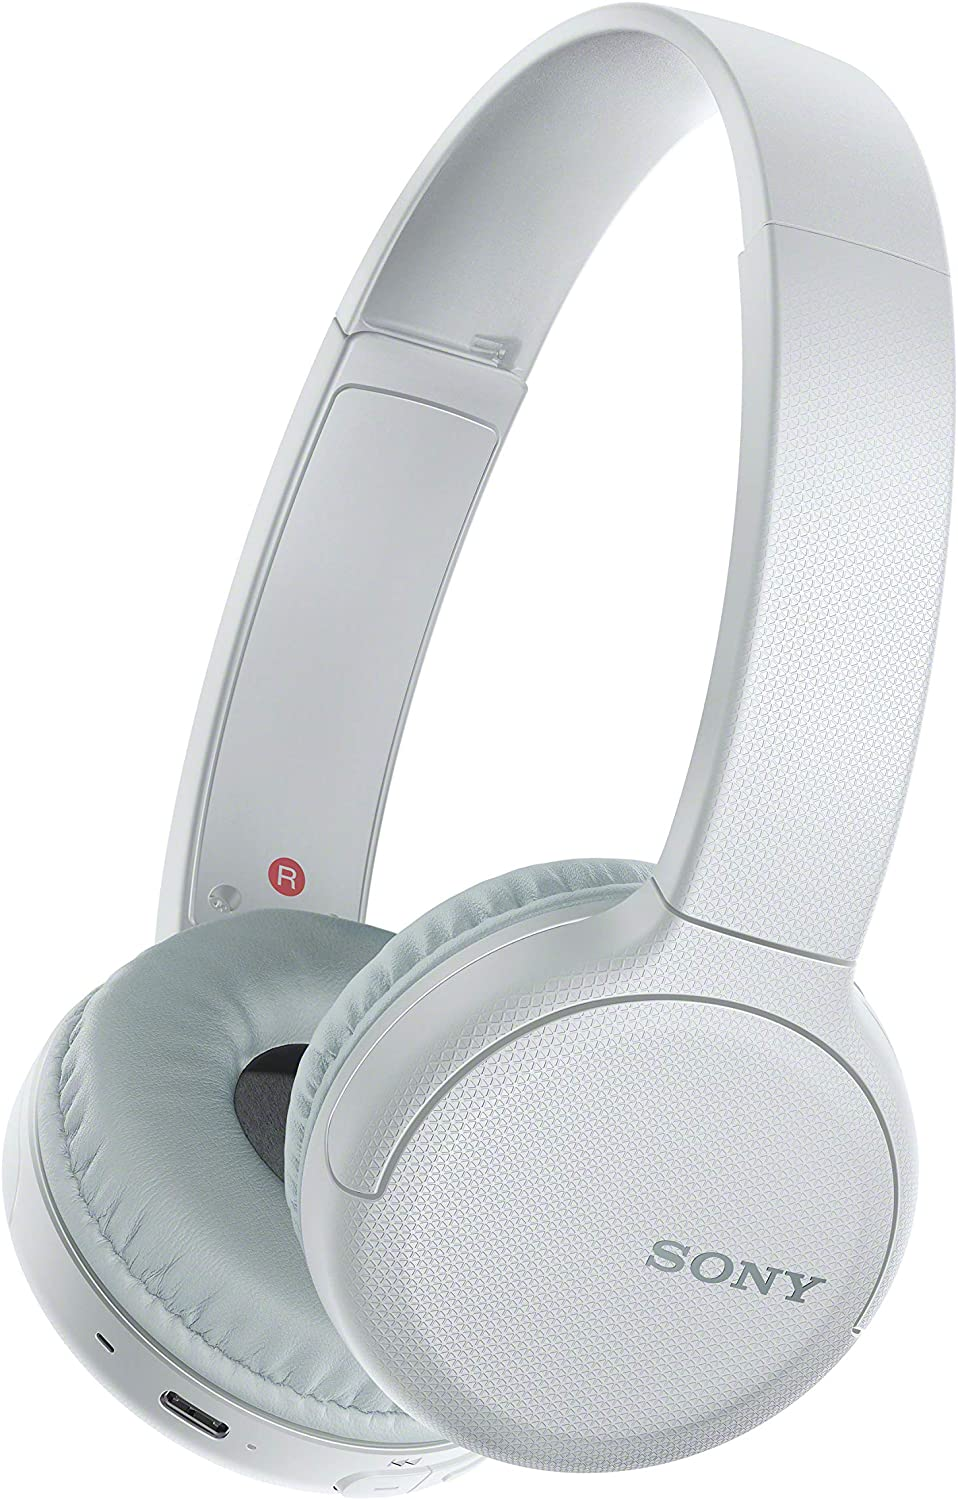 Sony WH-CH510 Wireless On-Ear Headphones, White (WHCH510/W) (Amazon Exclusive)